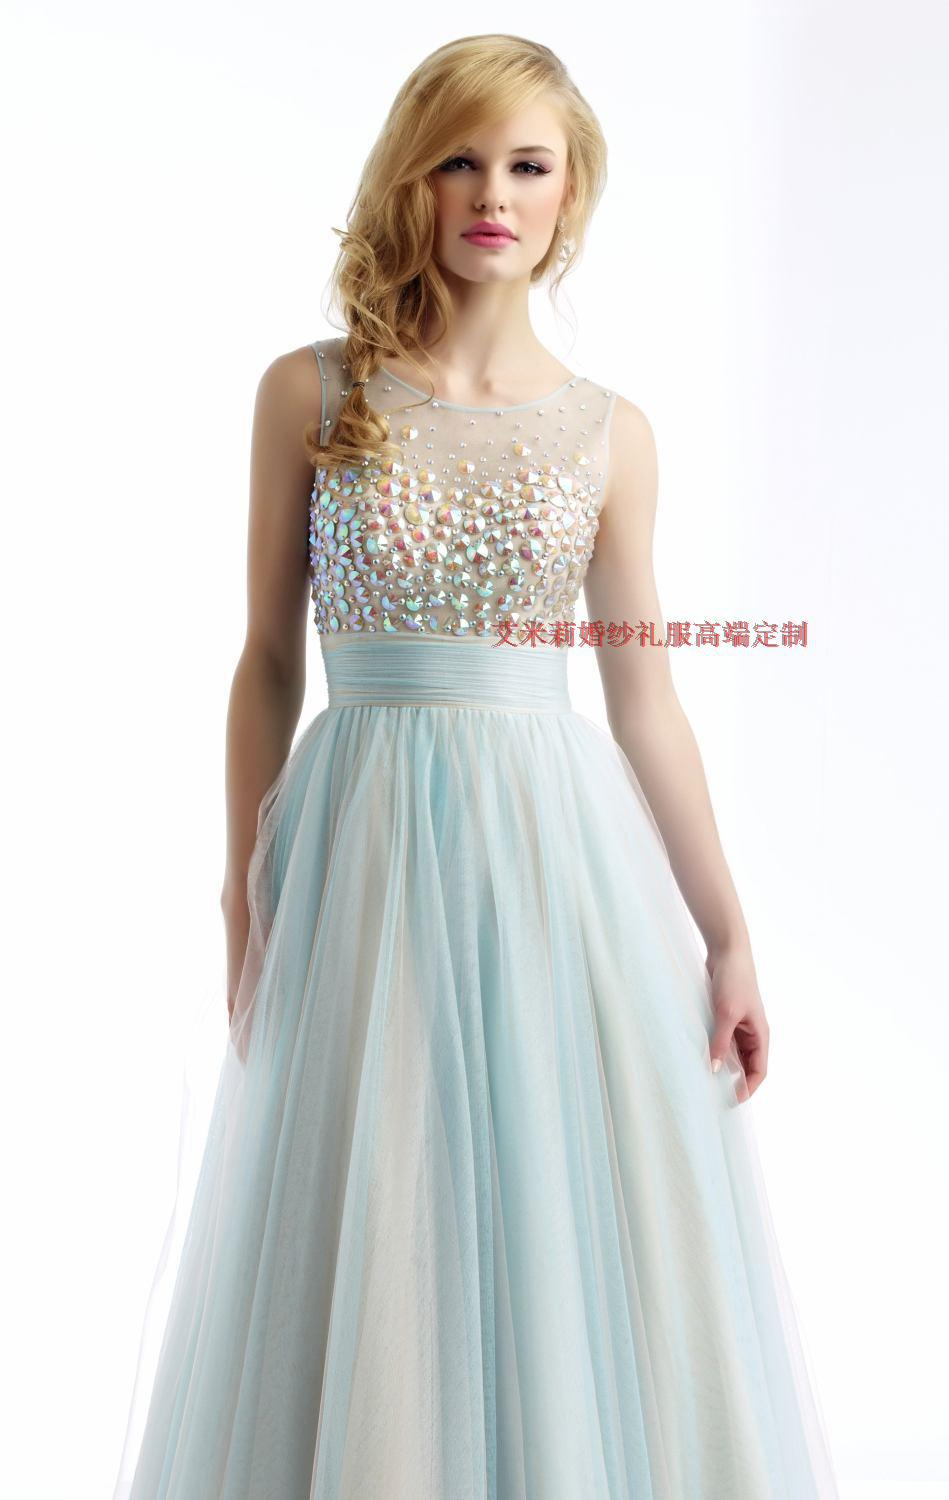 2016 Free Shipping Vestidos De 15 Anos Quinceanera Dresses Prom Gowns A-line Hot Cheap Crystal Quinceanera Gowns V-back